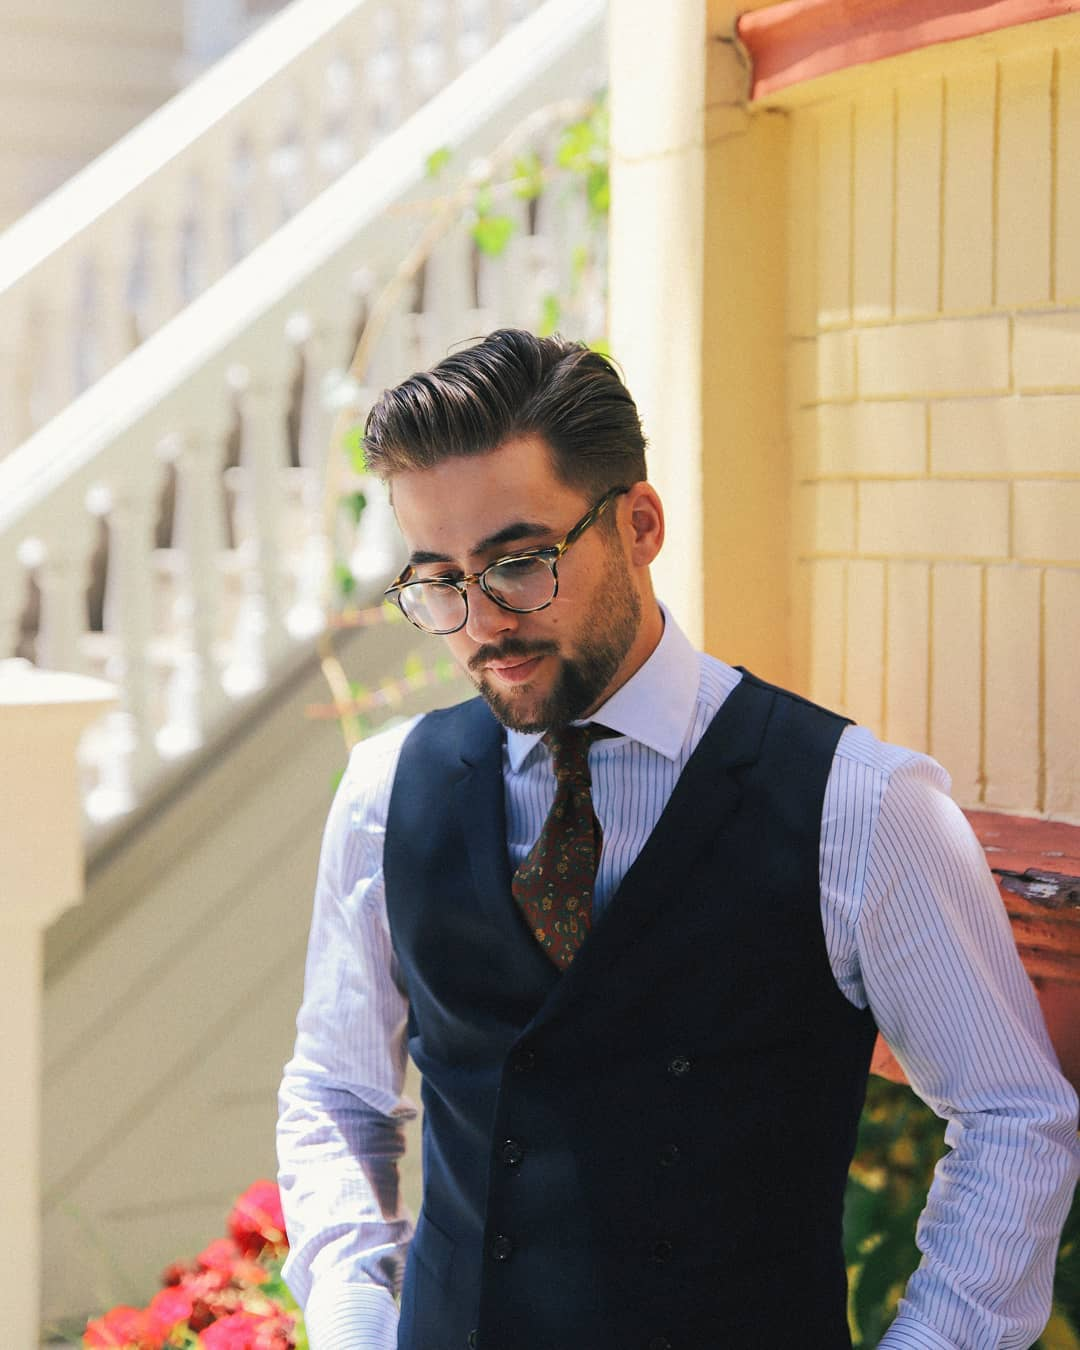 The 9 Best Business Hairstyles For Men In 2021 The Modest Man